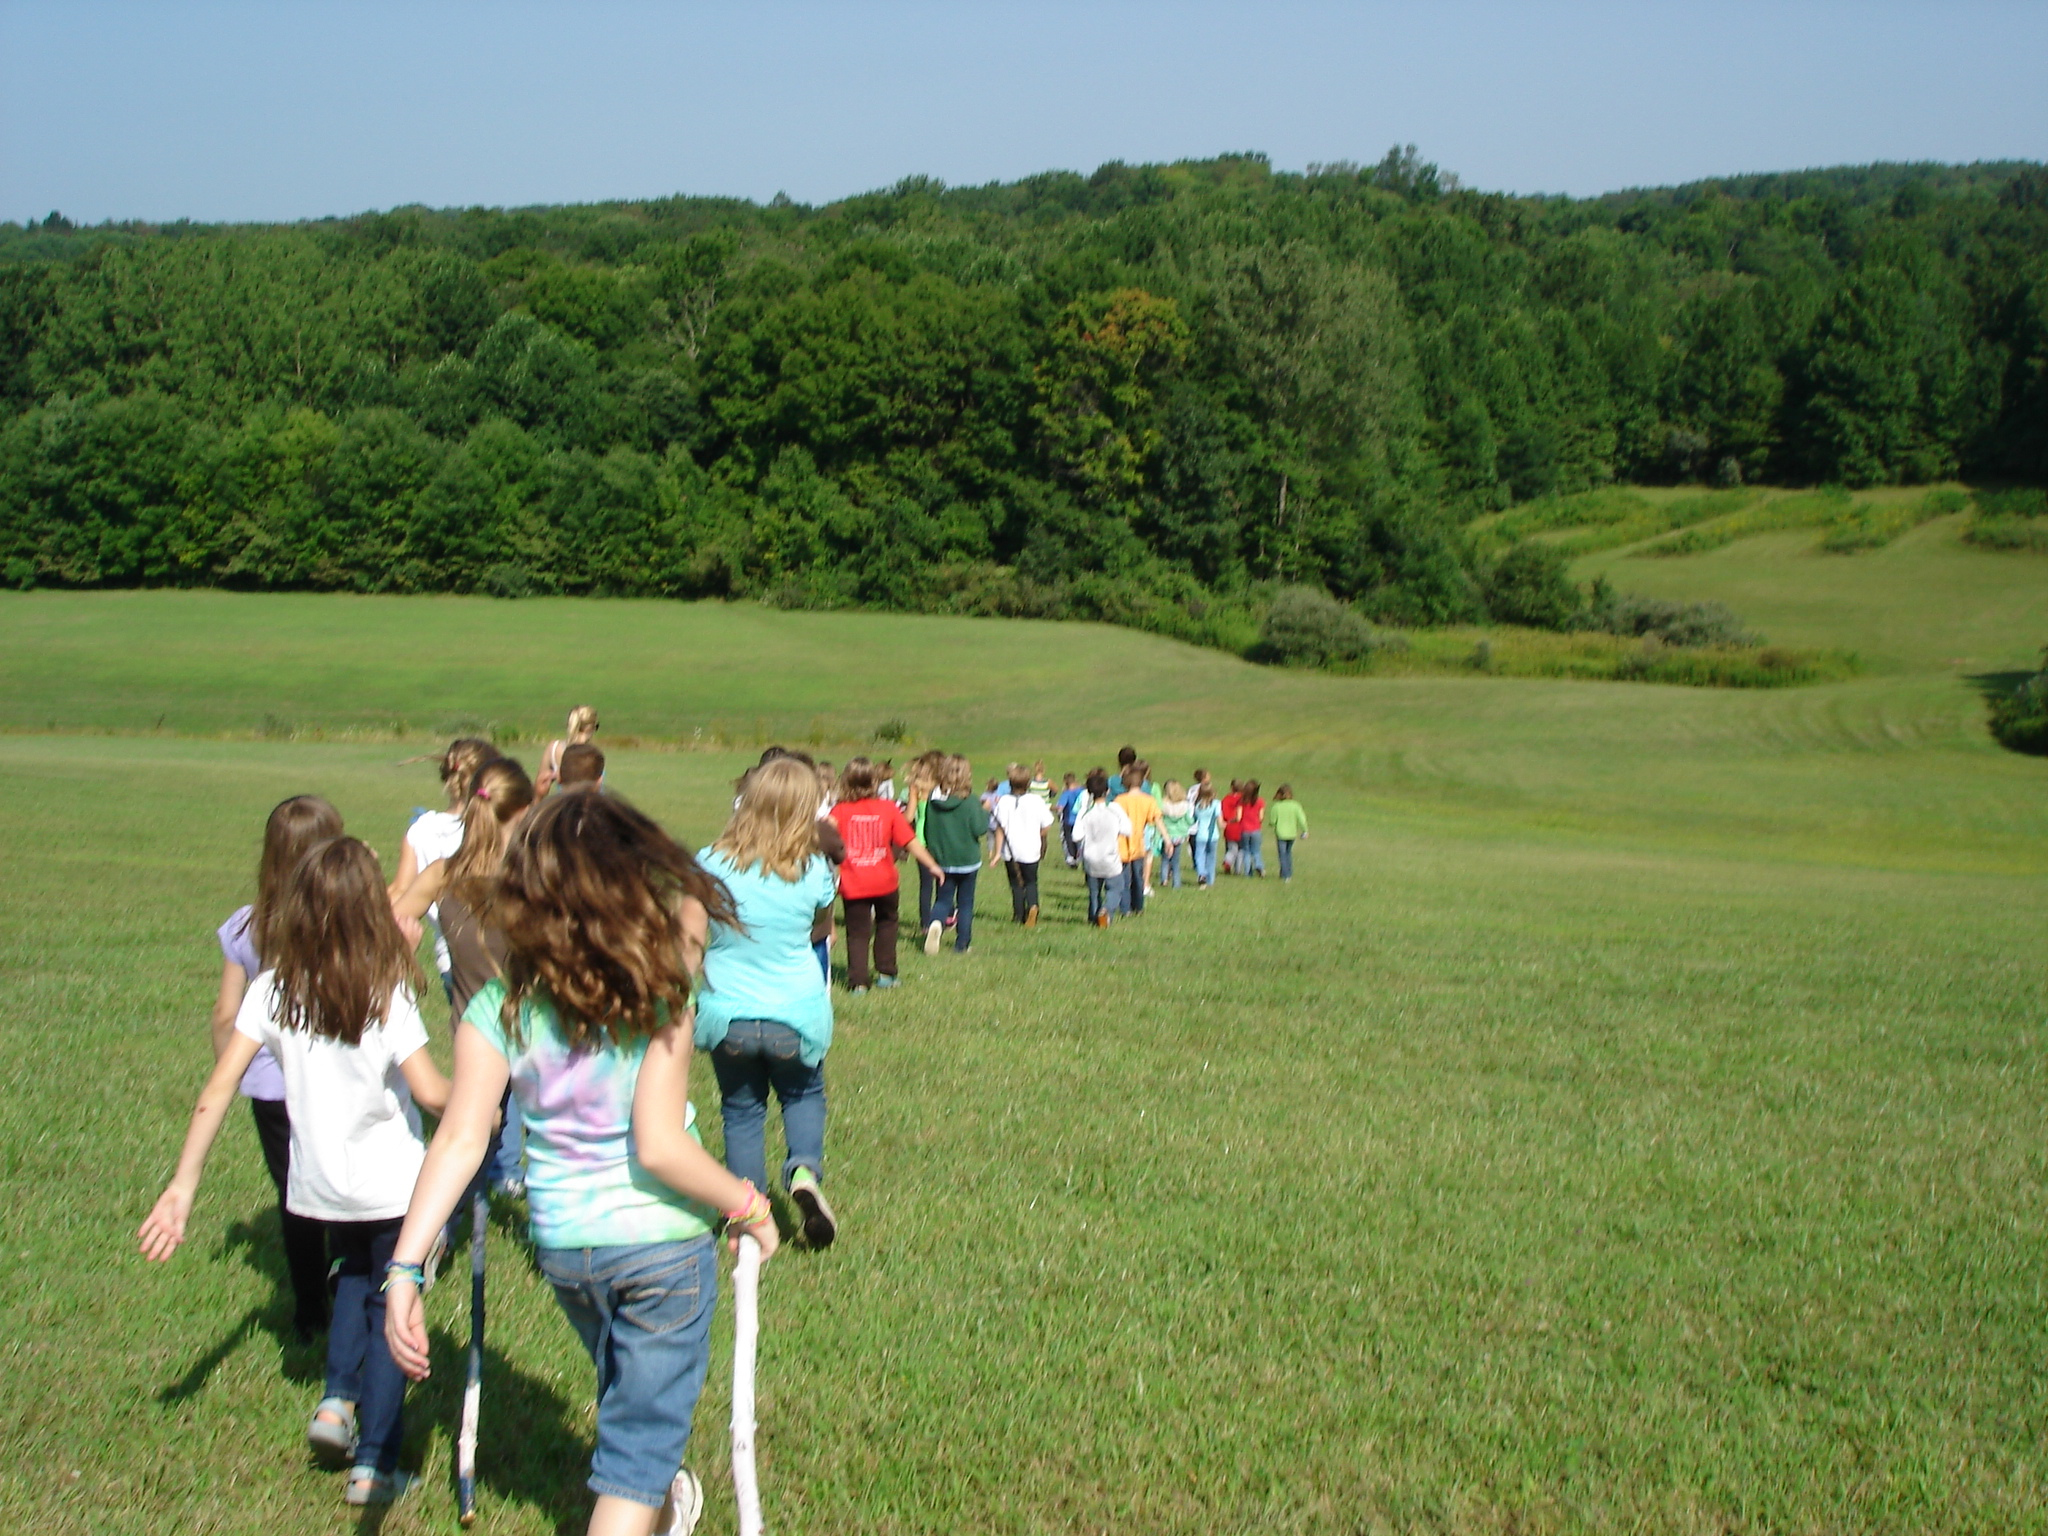 HHC provides a great experience for campers of all ages